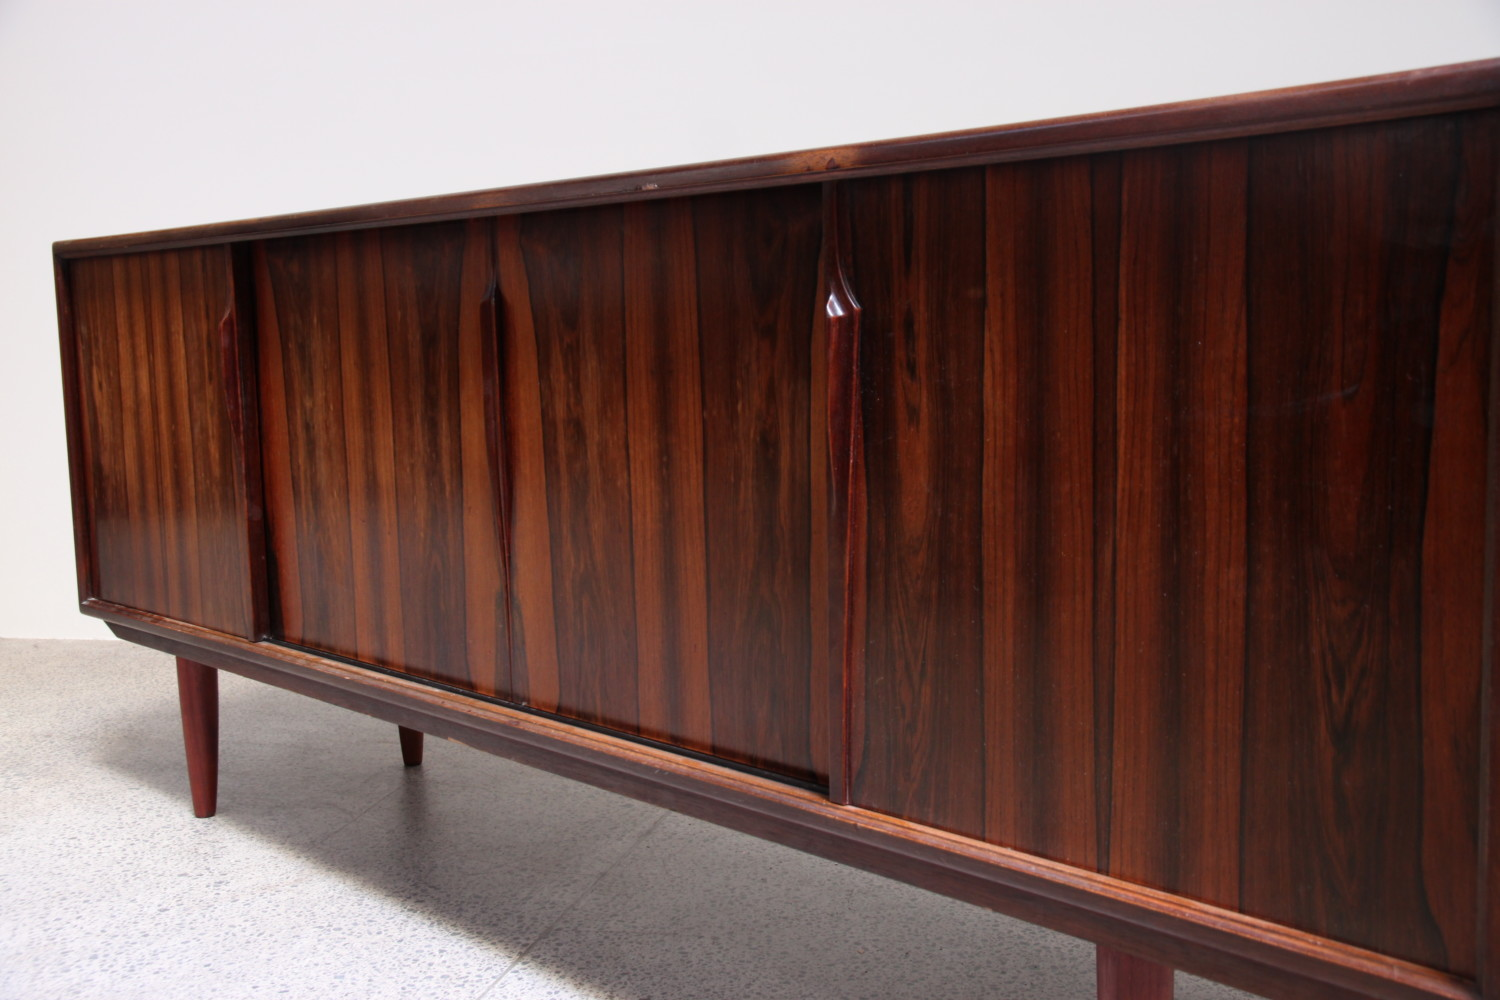 Rosewood Sideboard by Axel Christiansen